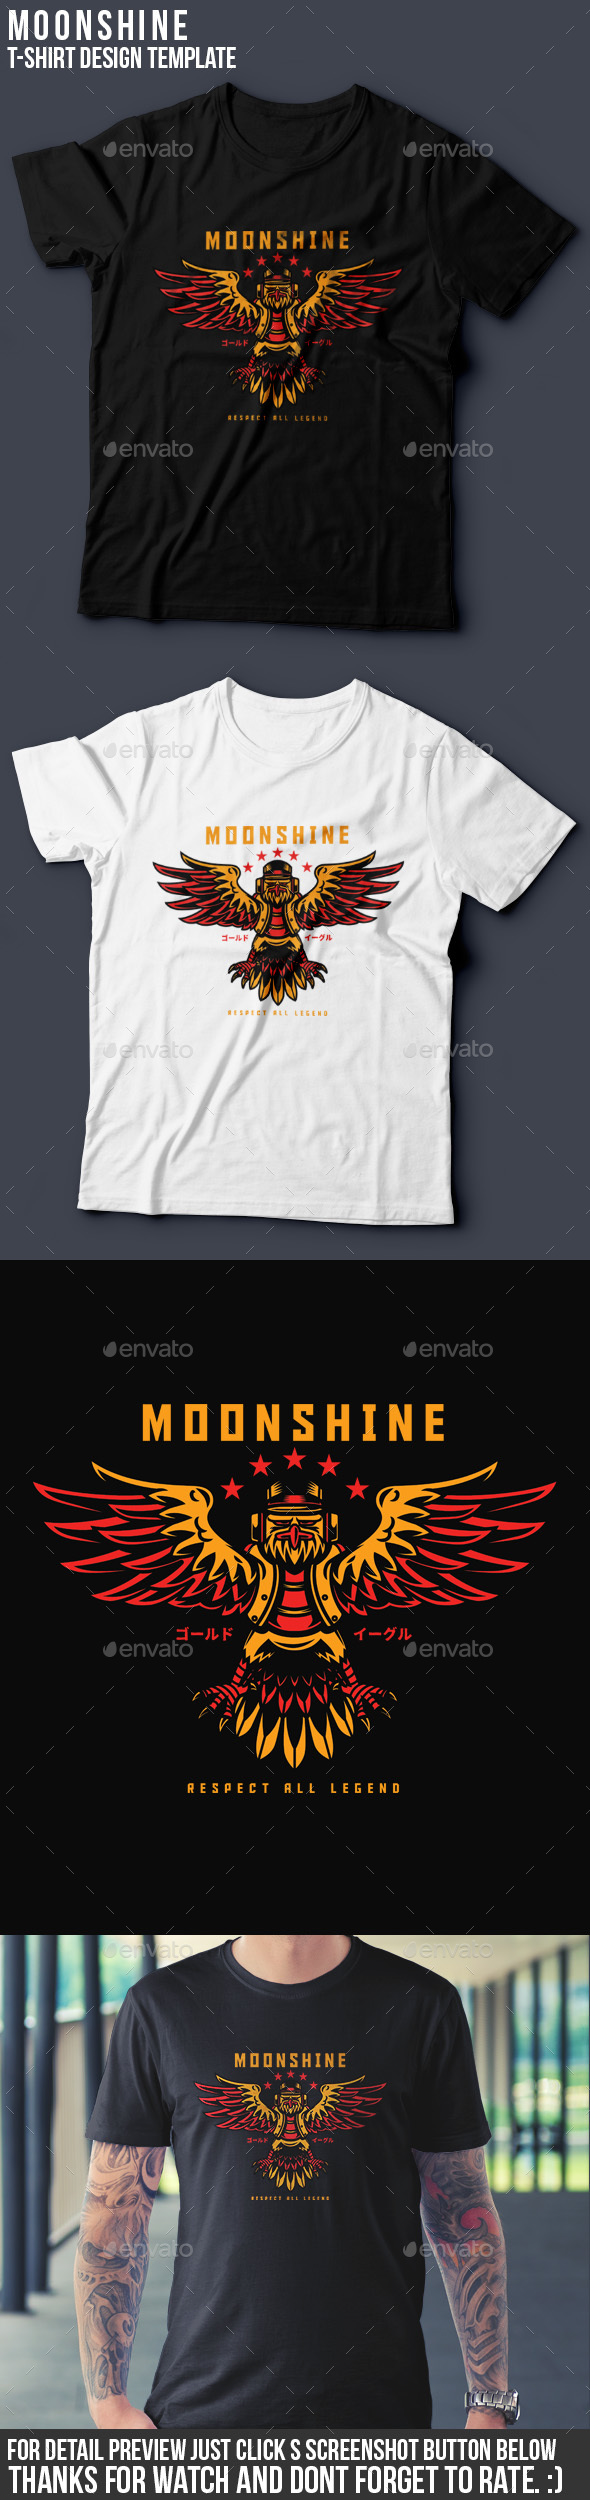 Moonshine T-Shirt Design - Clean Designs